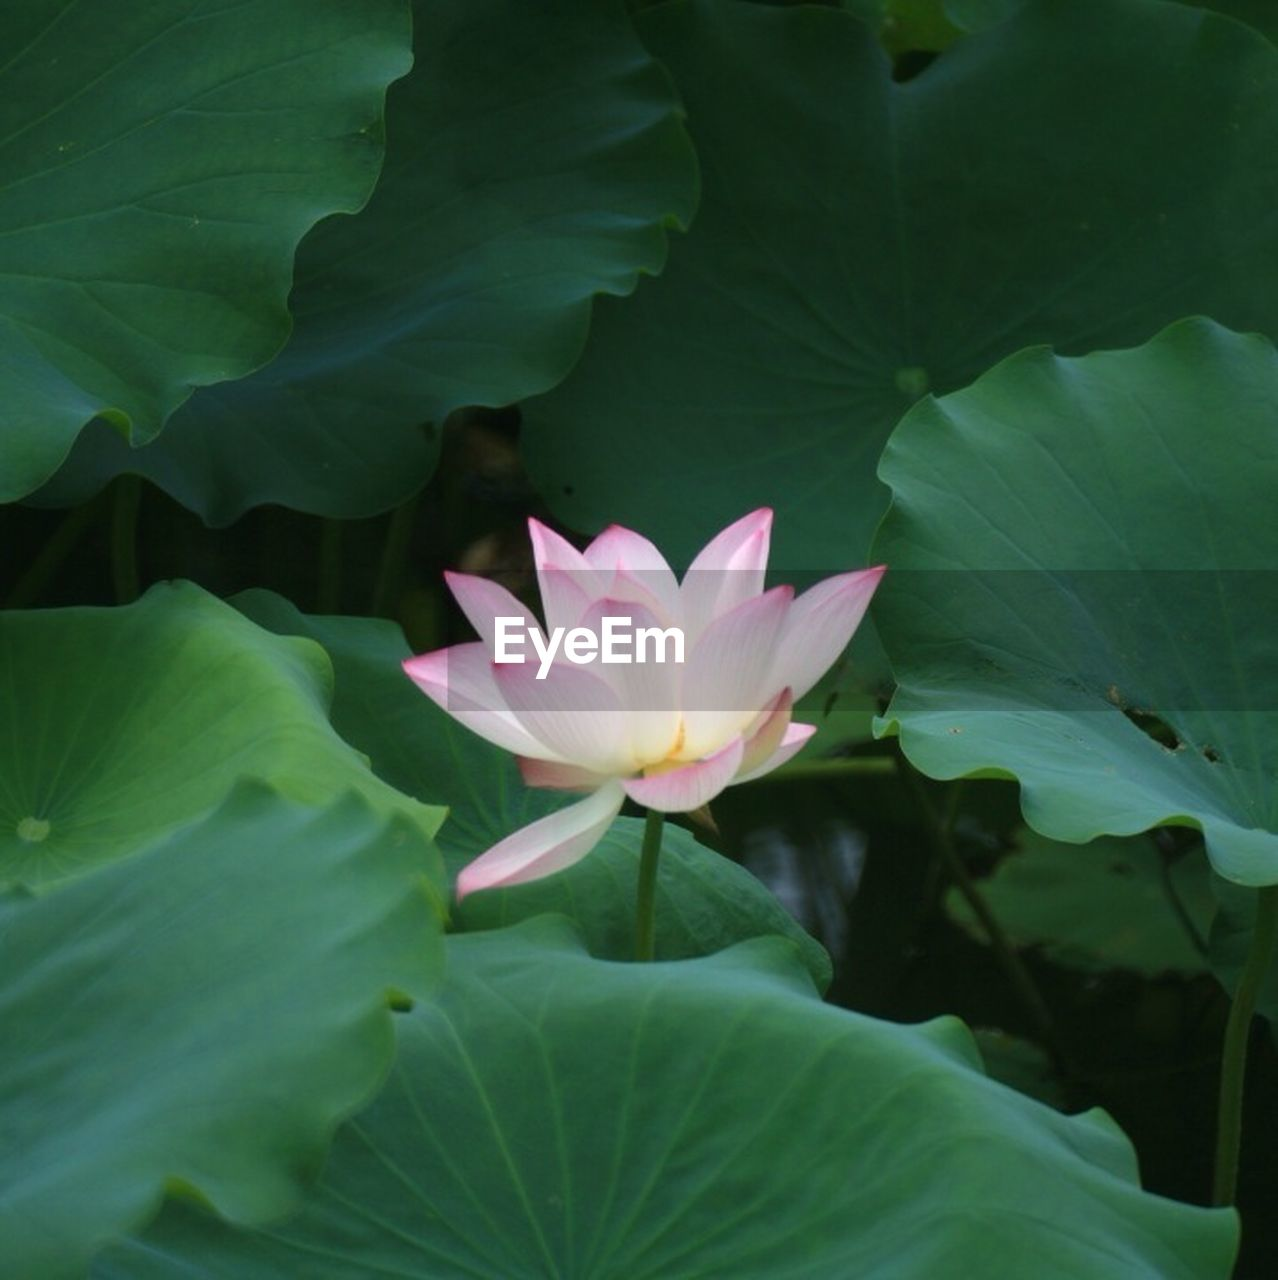 leaf, flower, beauty in nature, petal, lotus water lily, growth, nature, water lily, lotus, green color, fragility, flower head, freshness, plant, pink color, no people, blooming, outdoors, floating on water, close-up, day, lily pad